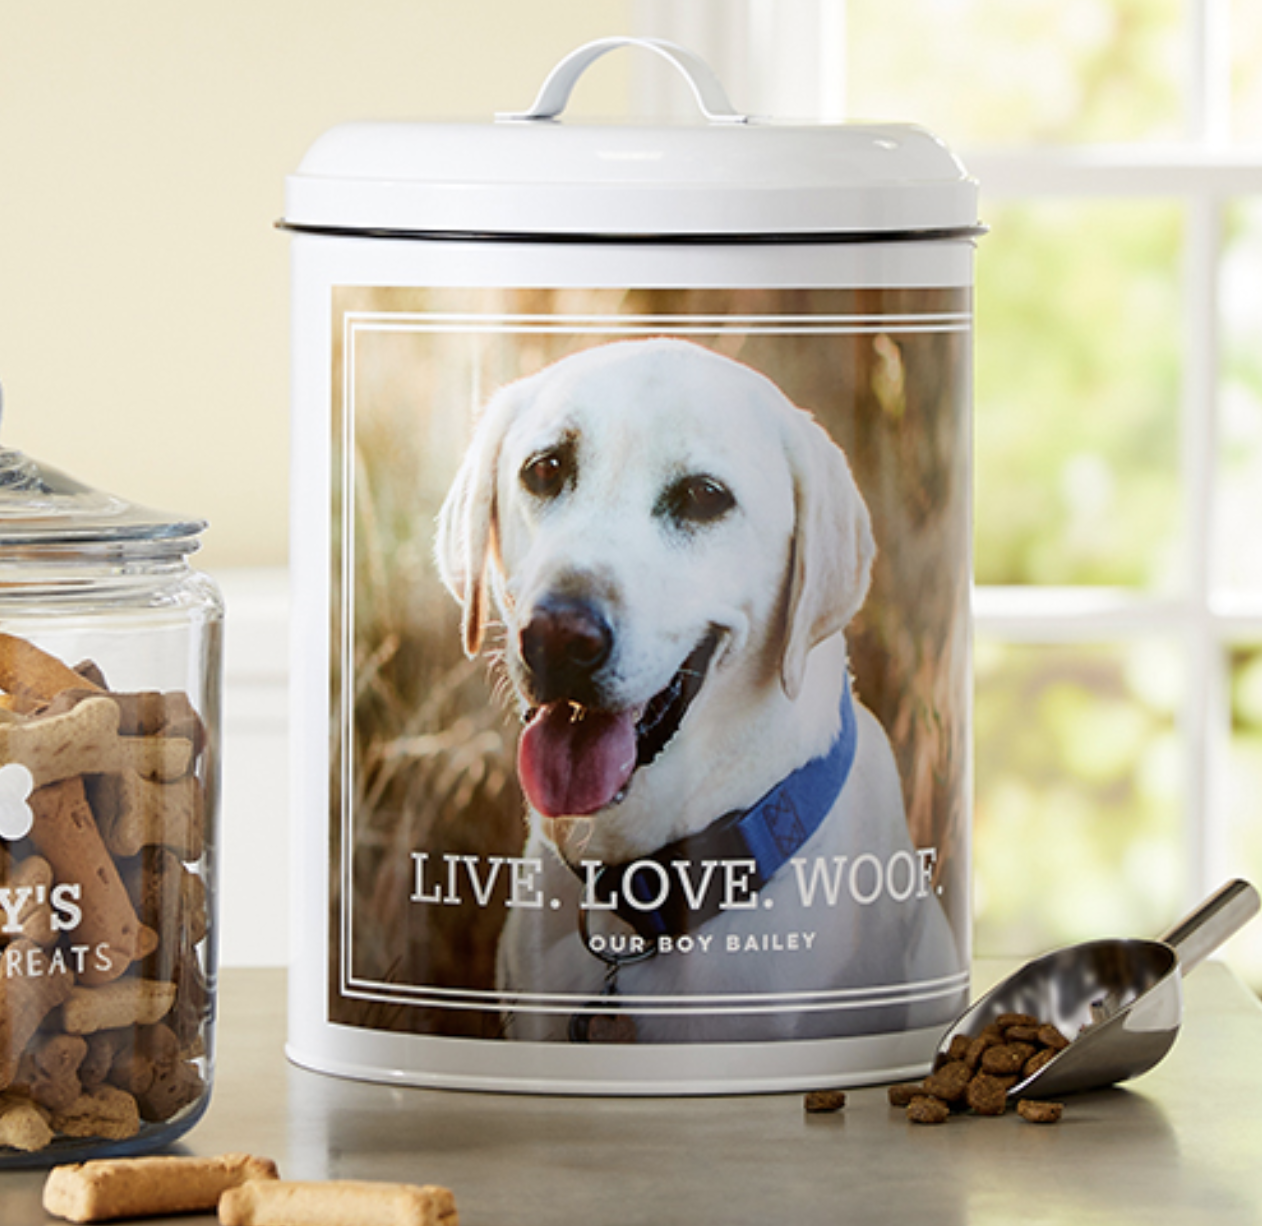 """A treat jar with a photo of a dog and print that says, """"Live. Love. Woof. Our boy Bailey"""""""